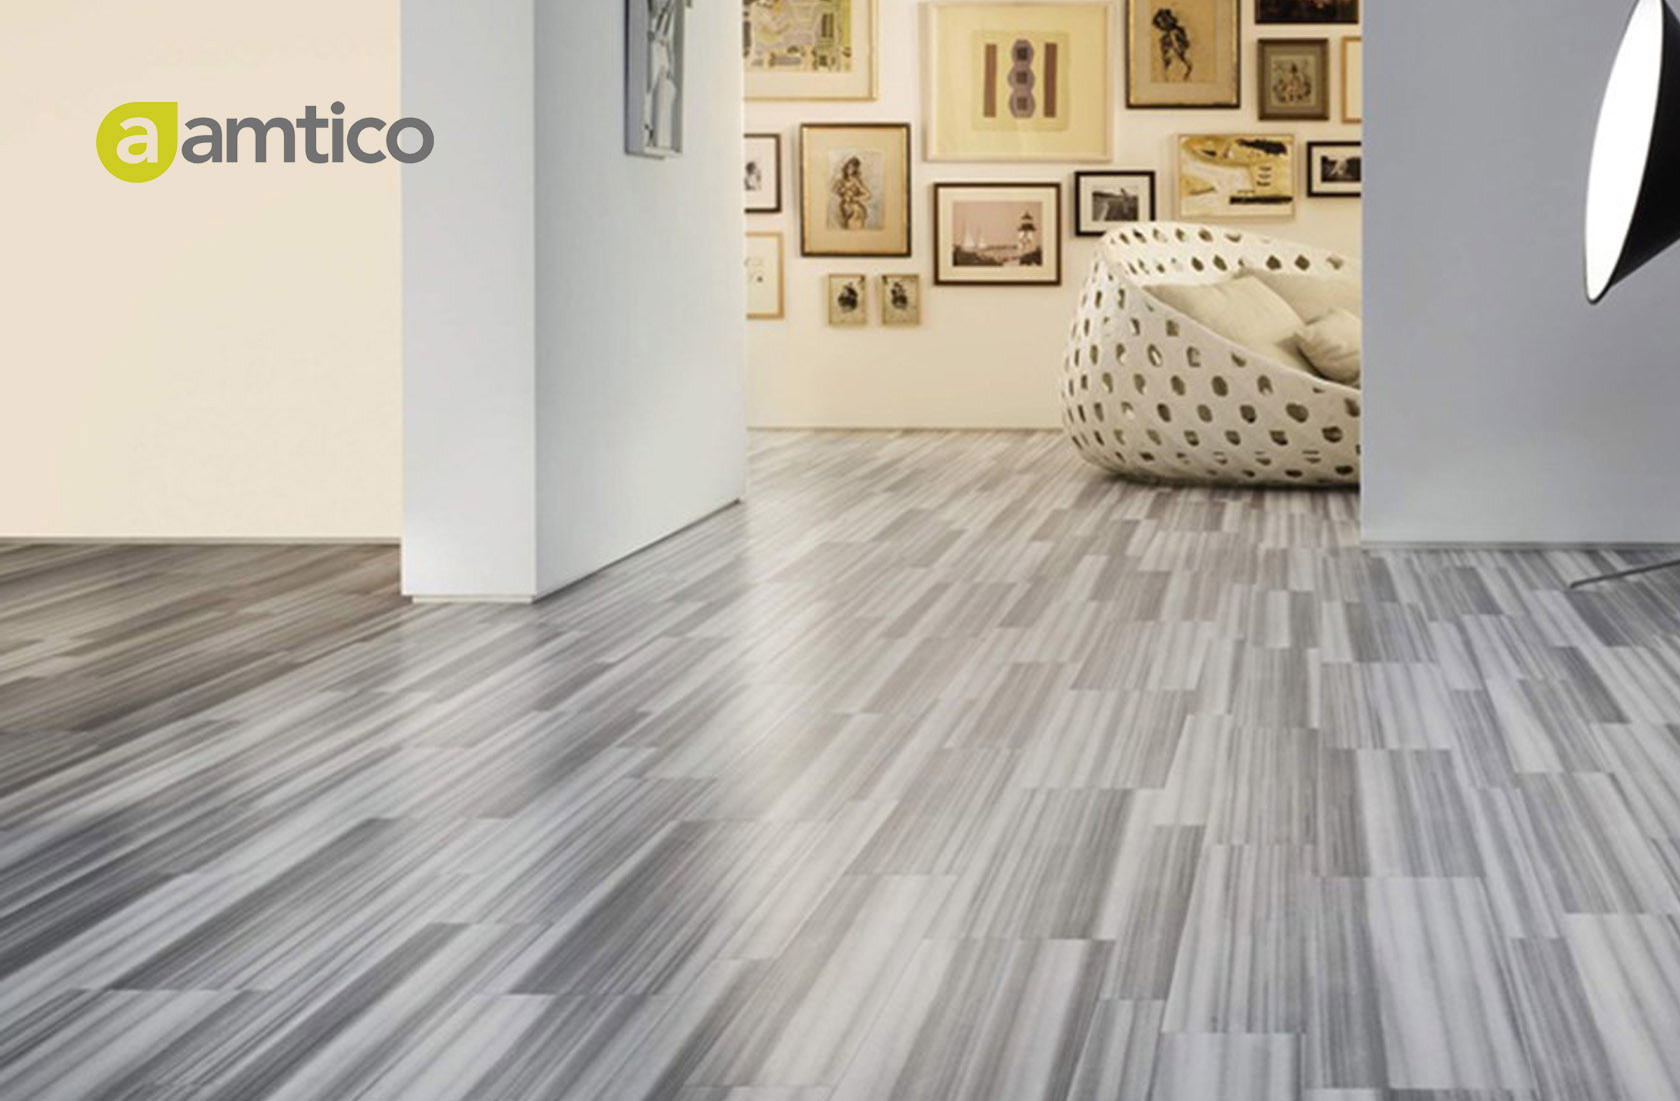 Why Choose Amtico Flooring